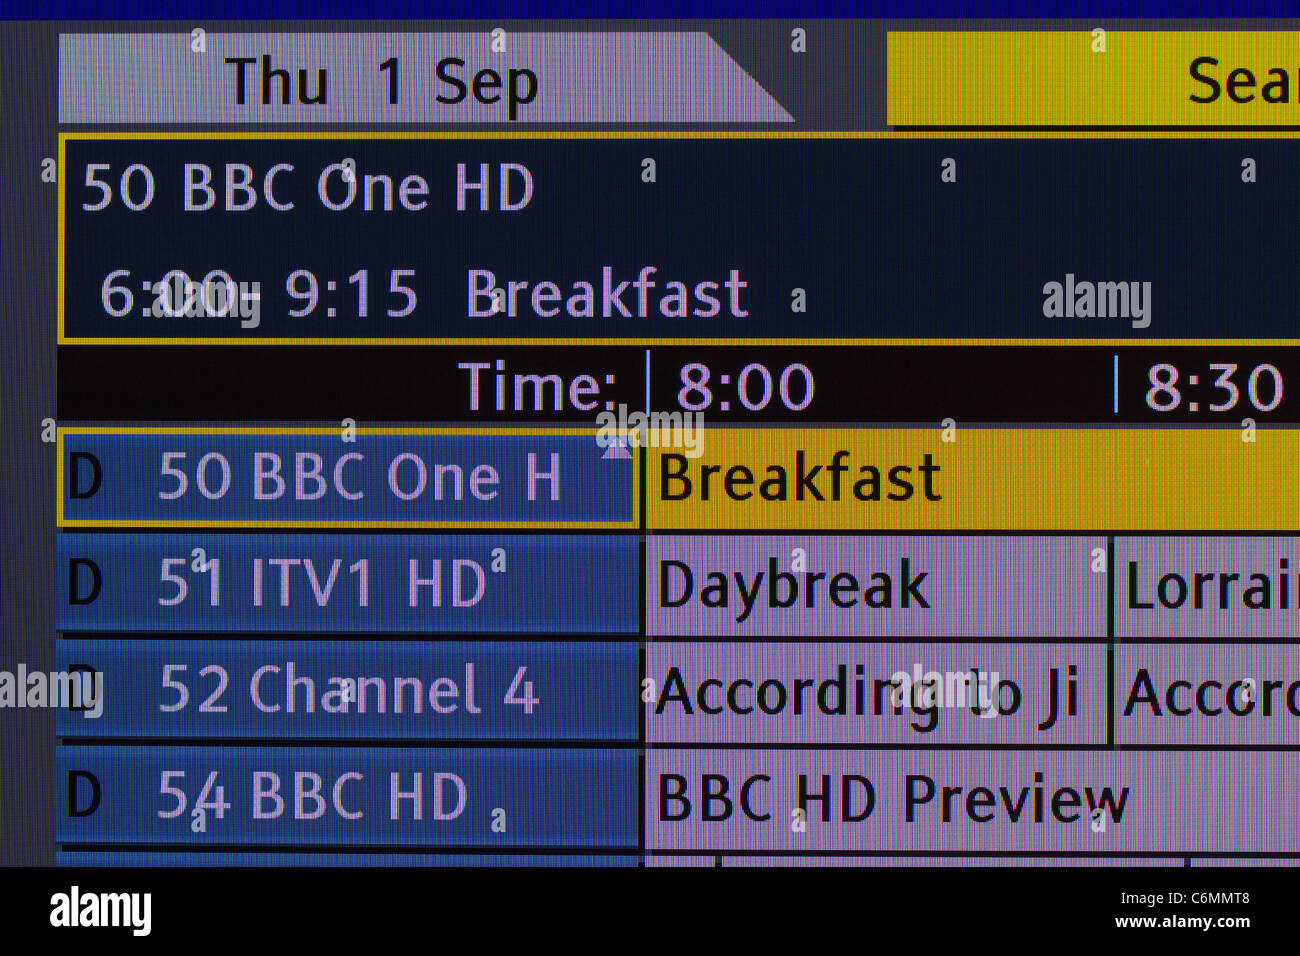 4k and the channel guide conundrum | n22 blog.